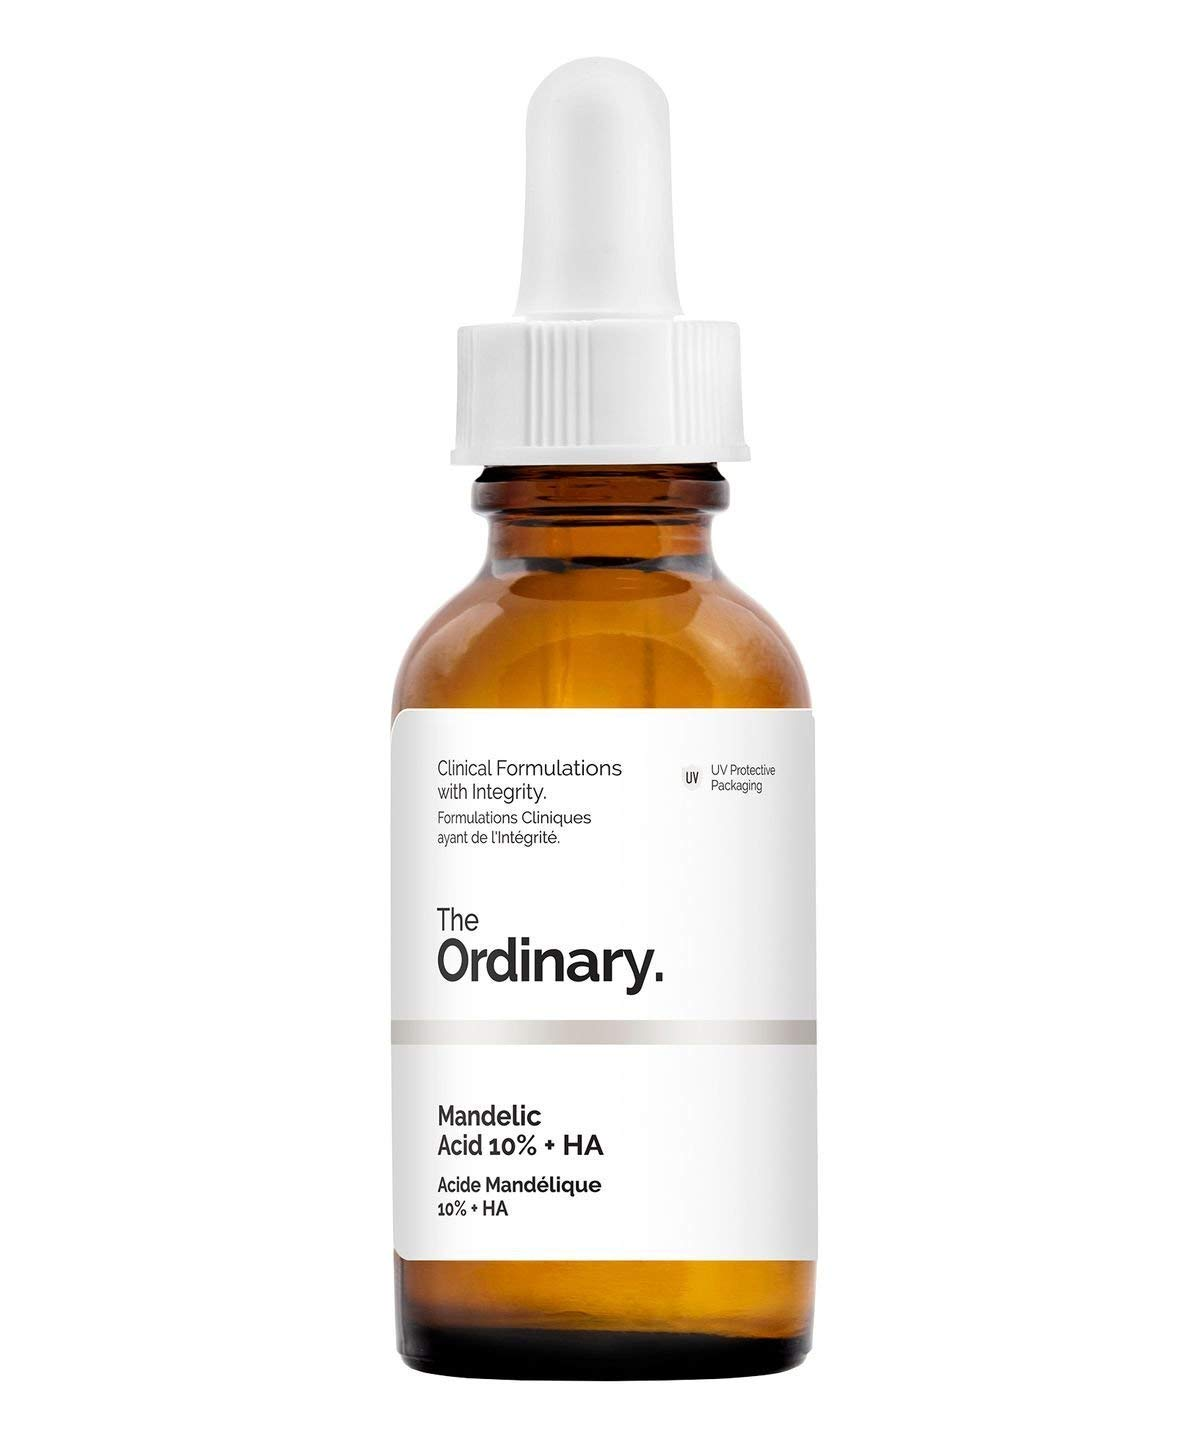 The Ordinary Mandelic Acid 10% + HA with AHA and Hyaluronic Acid (30ml)